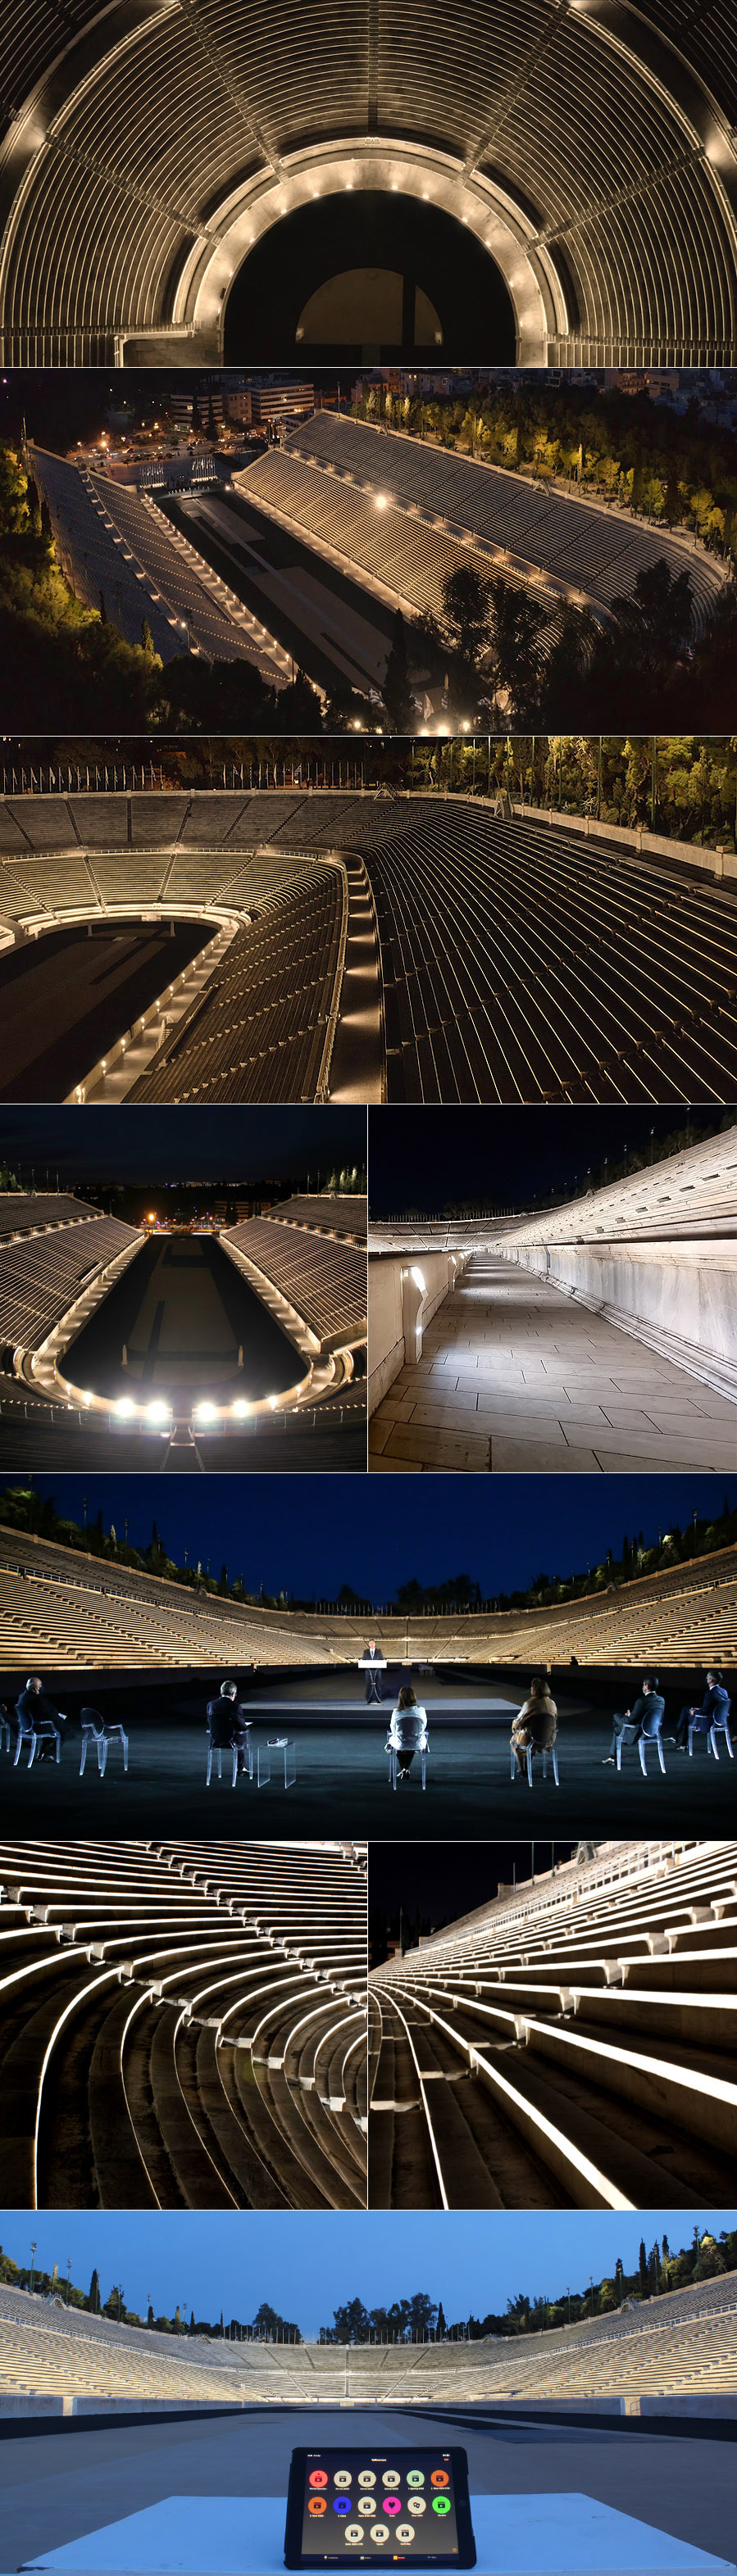 Panathenaic_Stadium2_copy.jpg